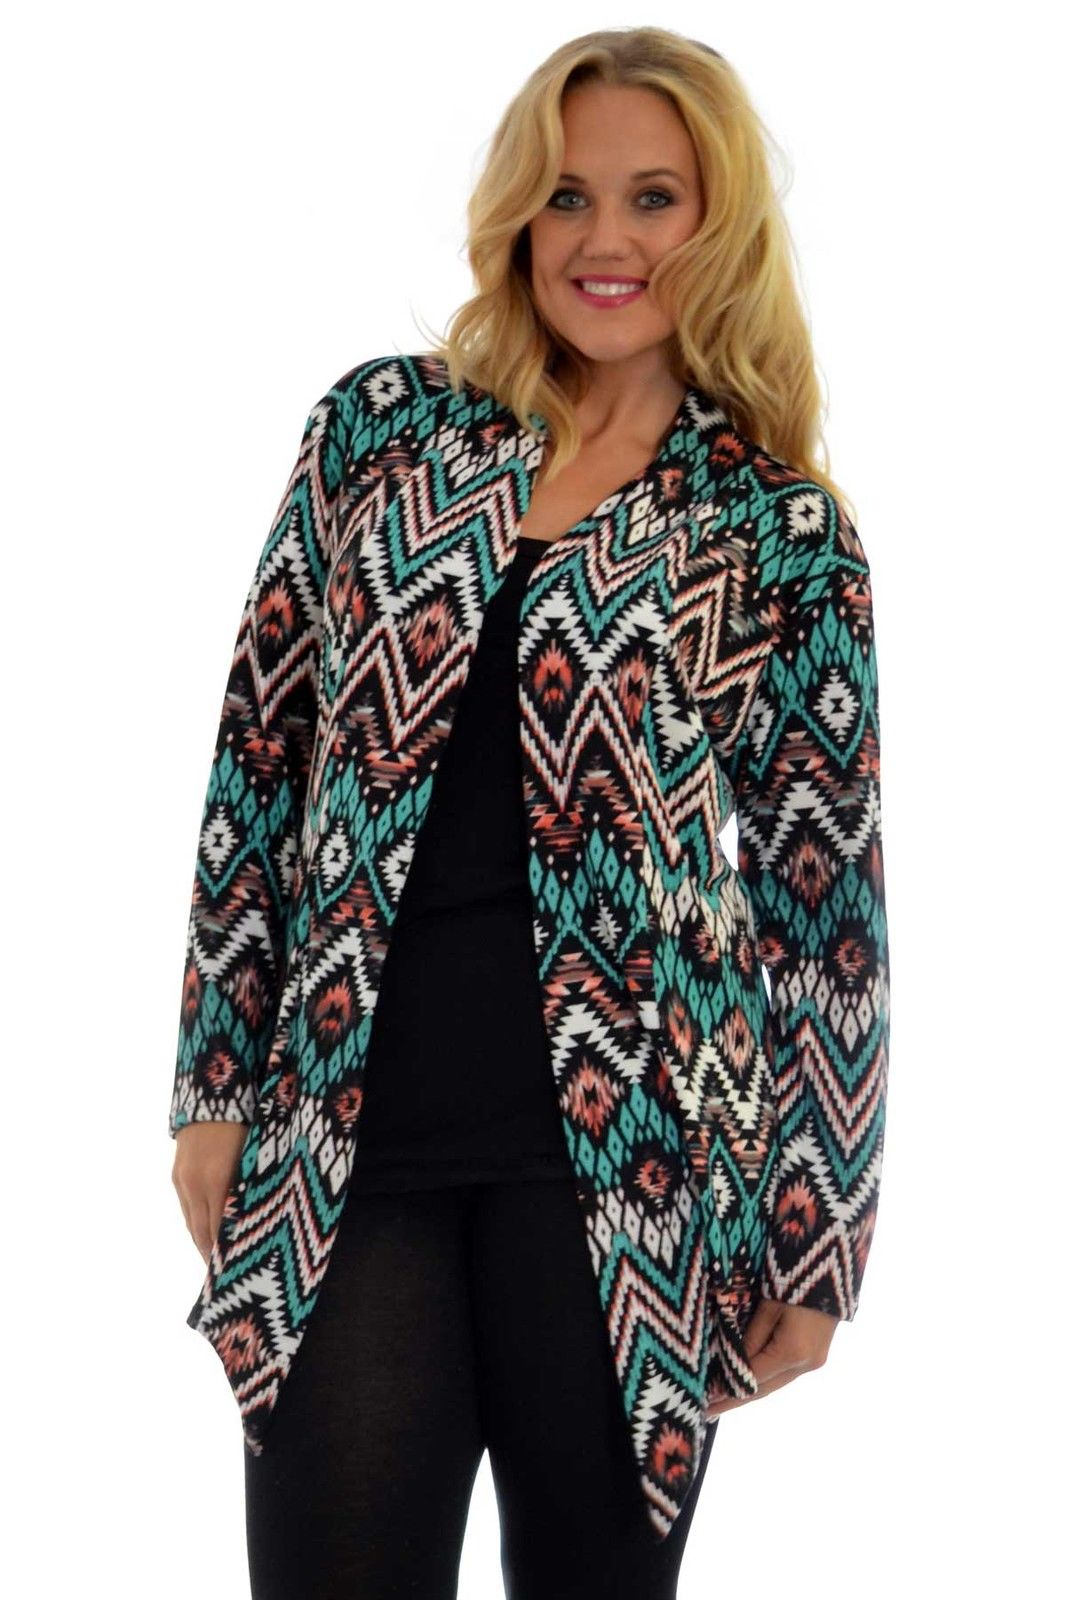 Shop for aztec cardigan womens online at Target. Free shipping on purchases over $35 and save 5% every day with your Target REDcard.